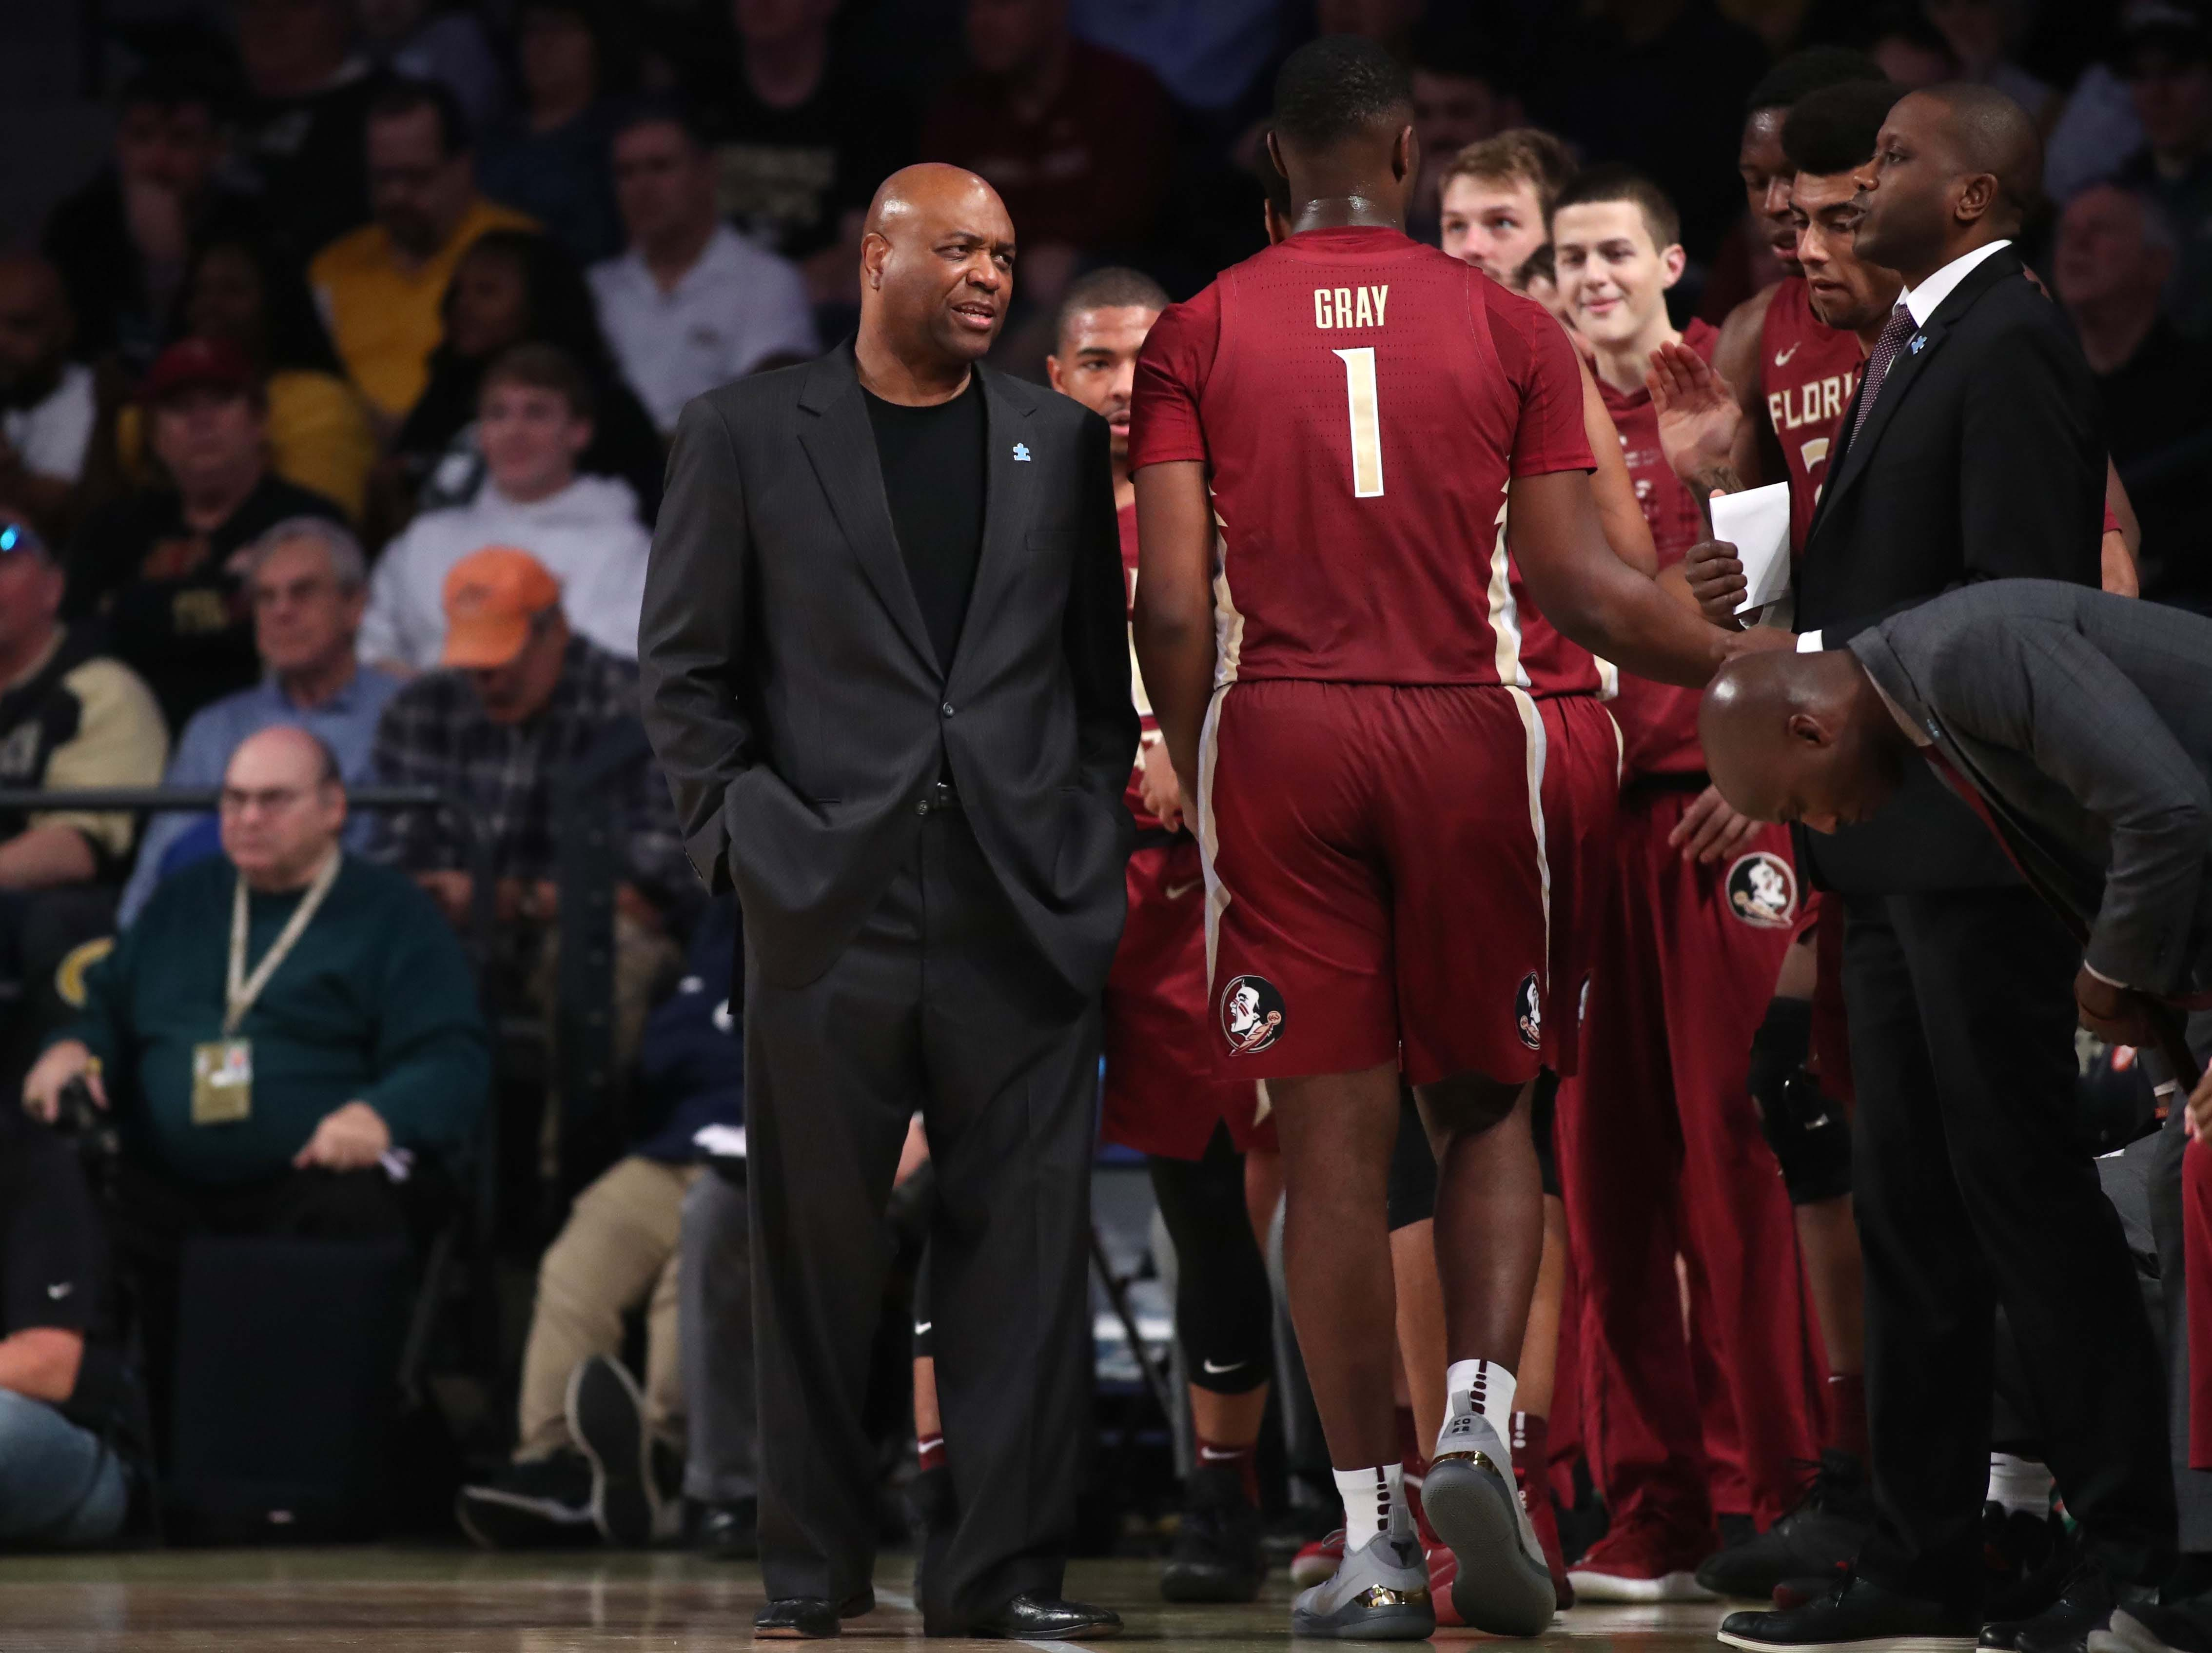 Feb 16, 2019; Atlanta, GA, USA; Florida State Seminoles head coach Leonard Hamilton on the bench during the first half against the Georgia Tech Yellow Jackets at McCamish Pavilion. Mandatory Credit: Jason Getz-USA TODAY Sports